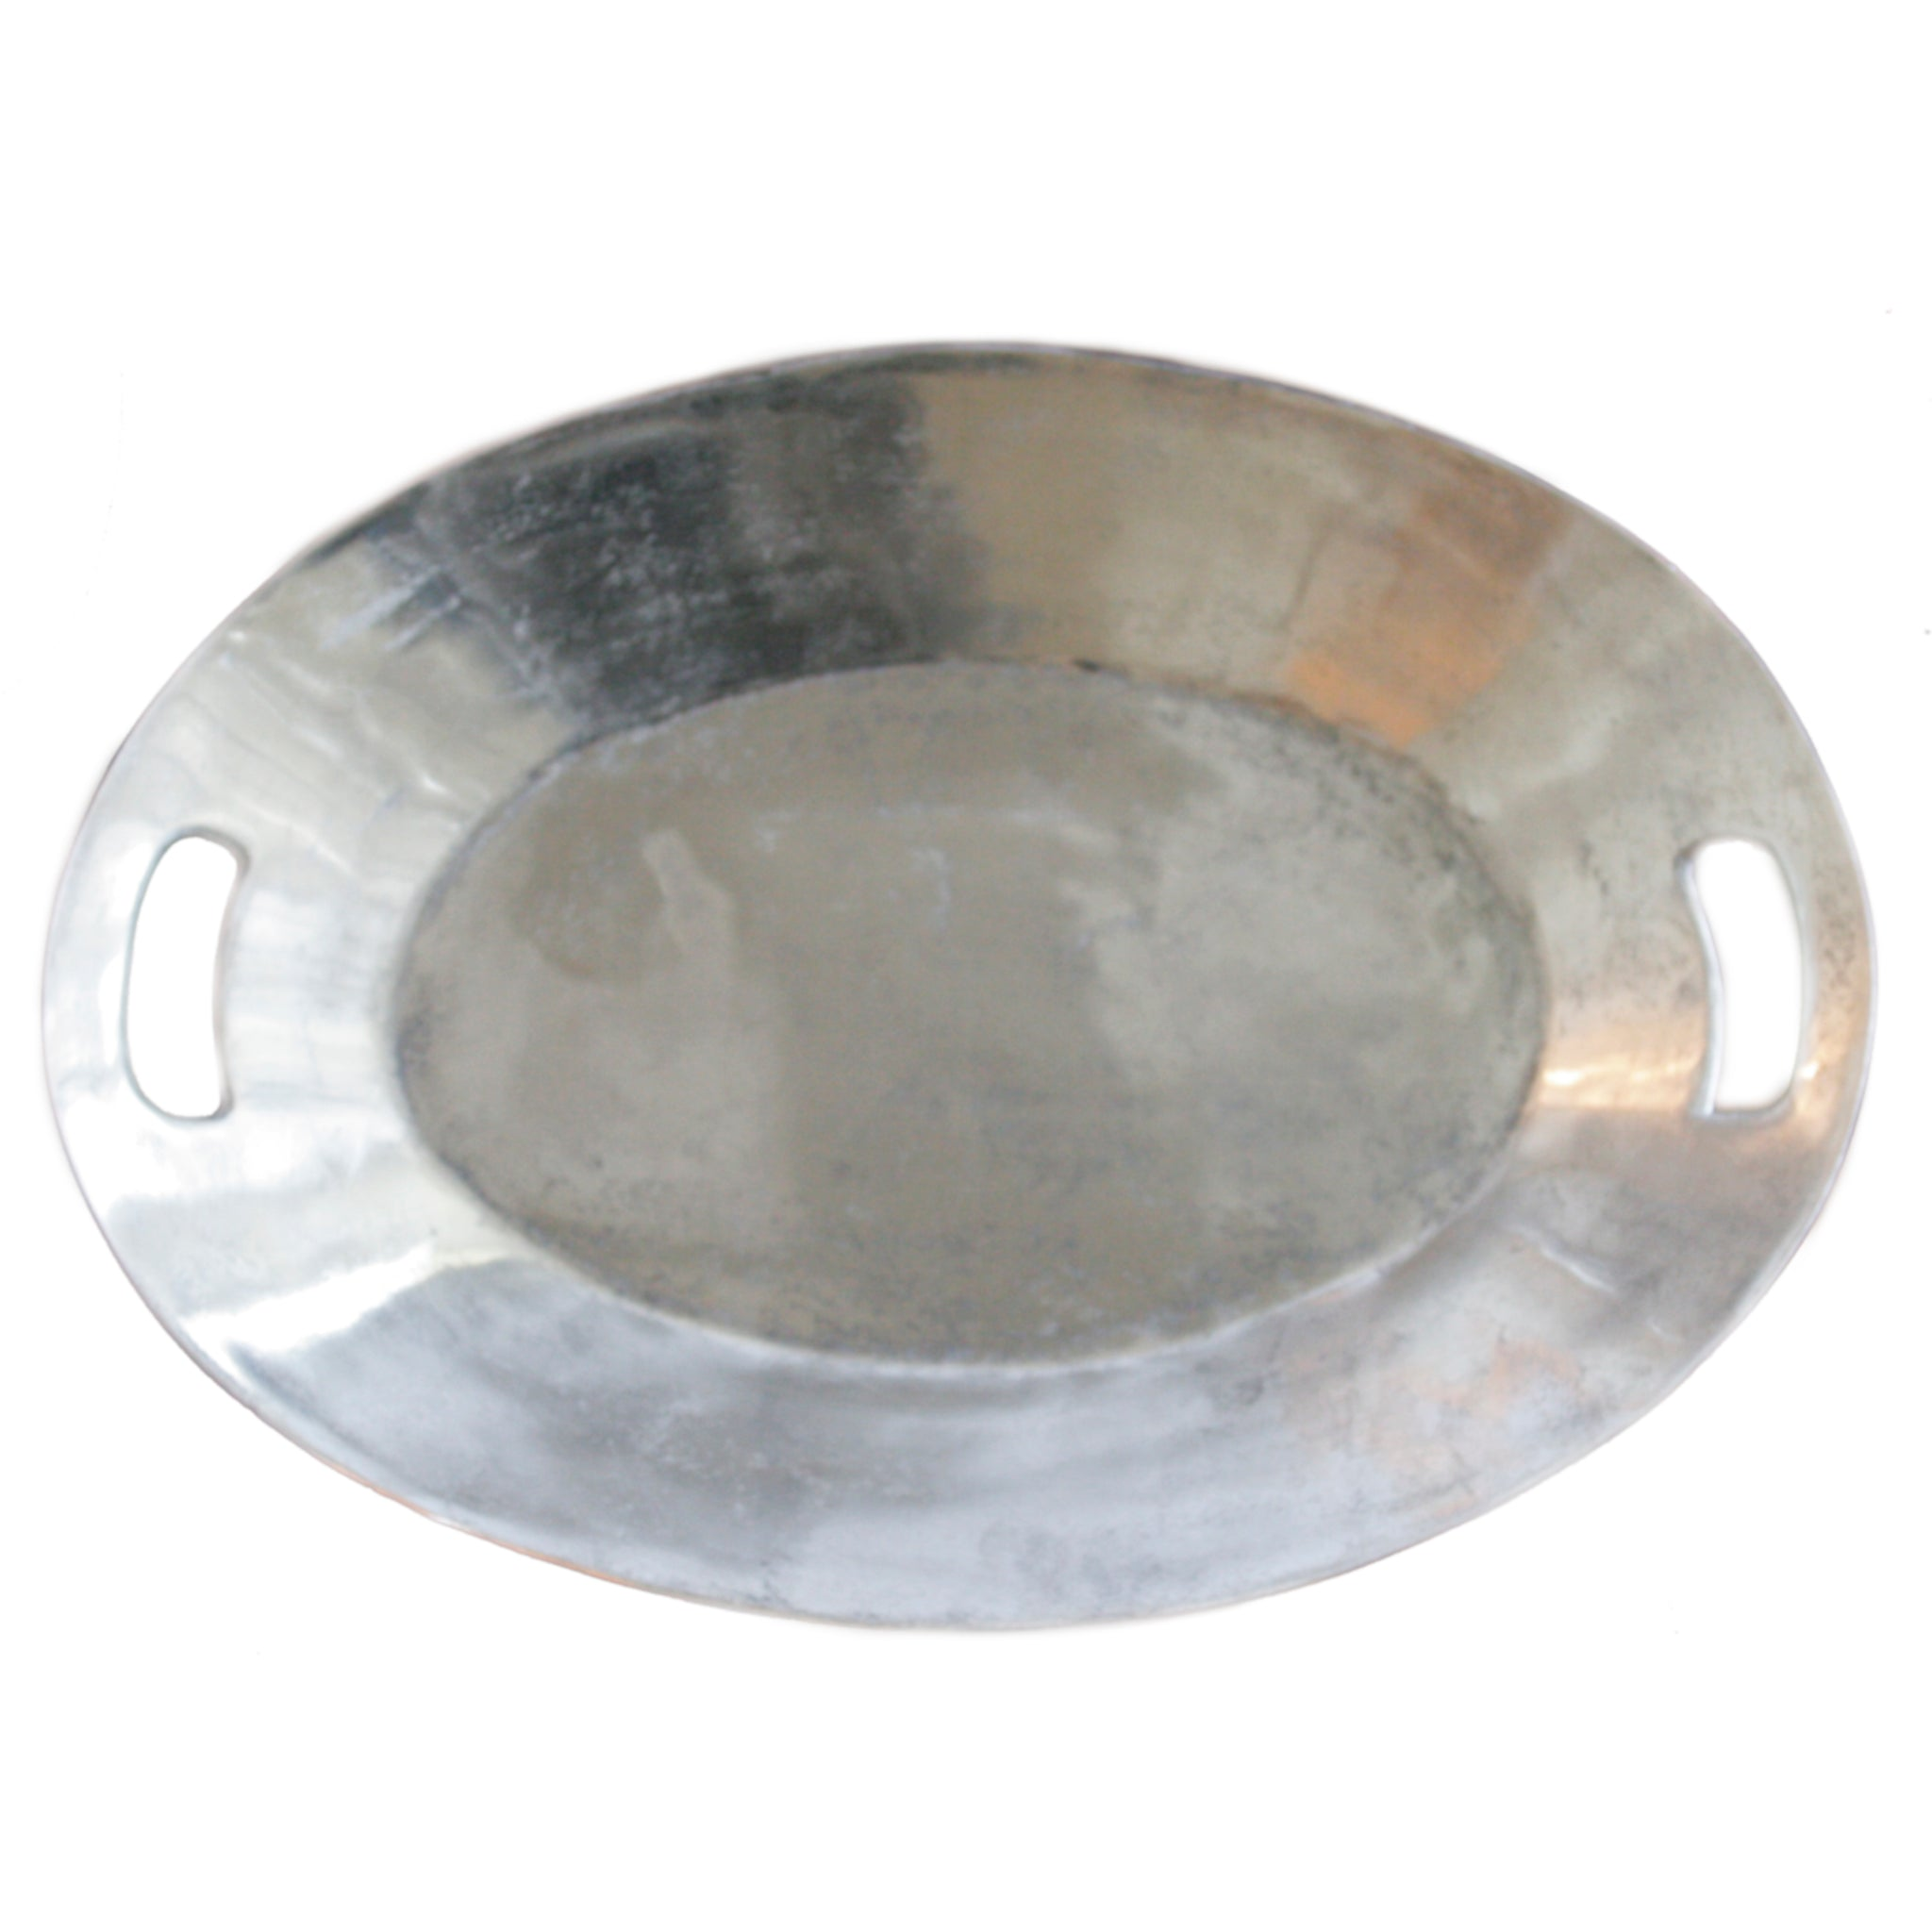 Oval tray in raw nickel